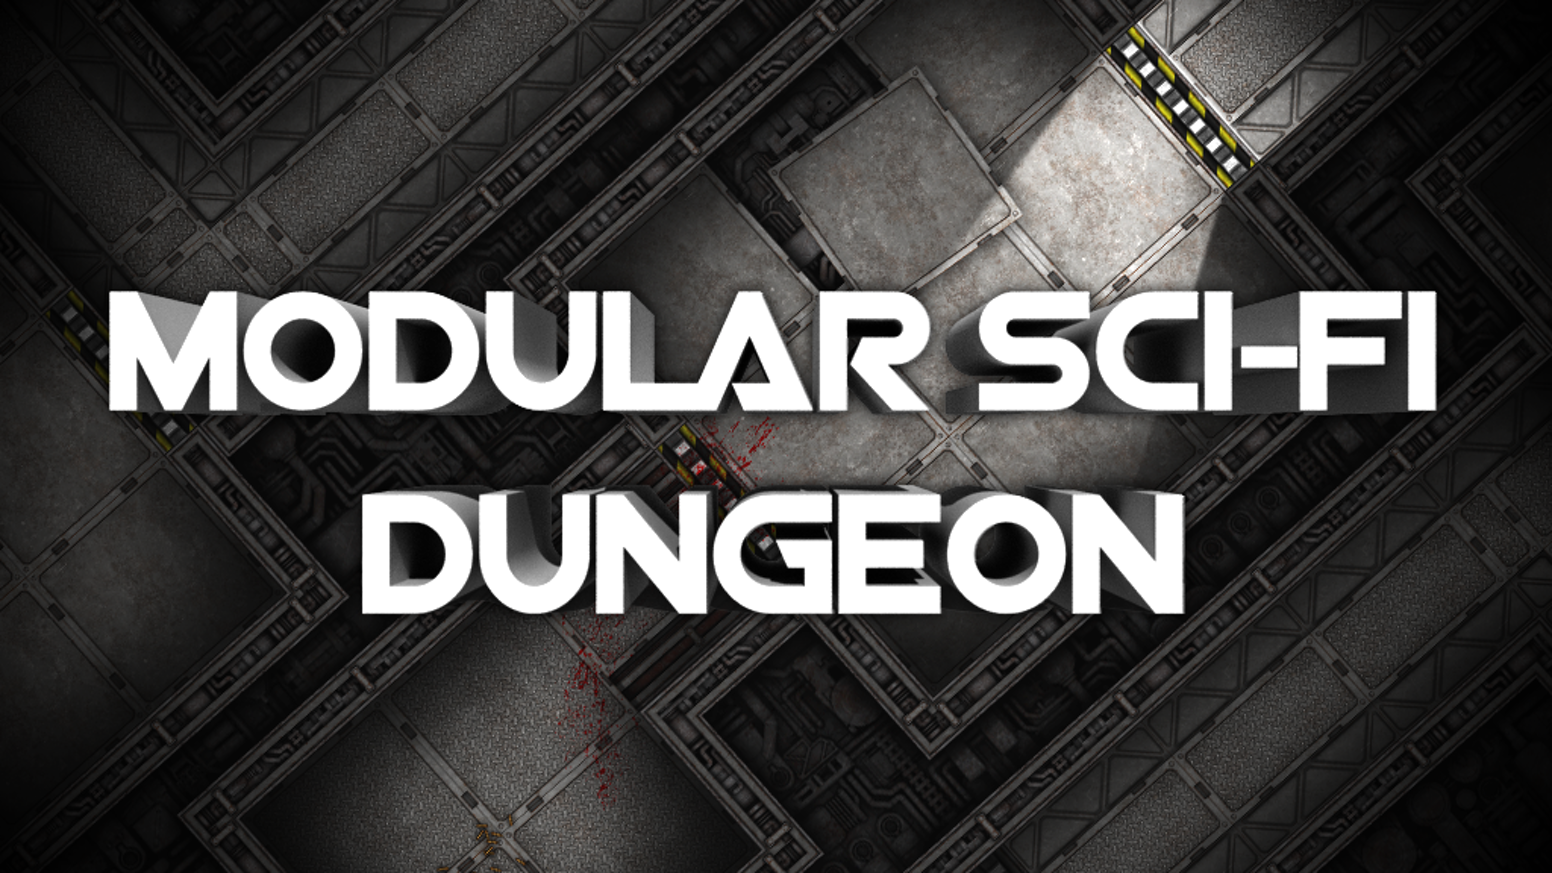 Modular rooms and corridors for creating stunning tabletop Sci-Fi maps. Could be used for space stations, ships, space hulks, and more!